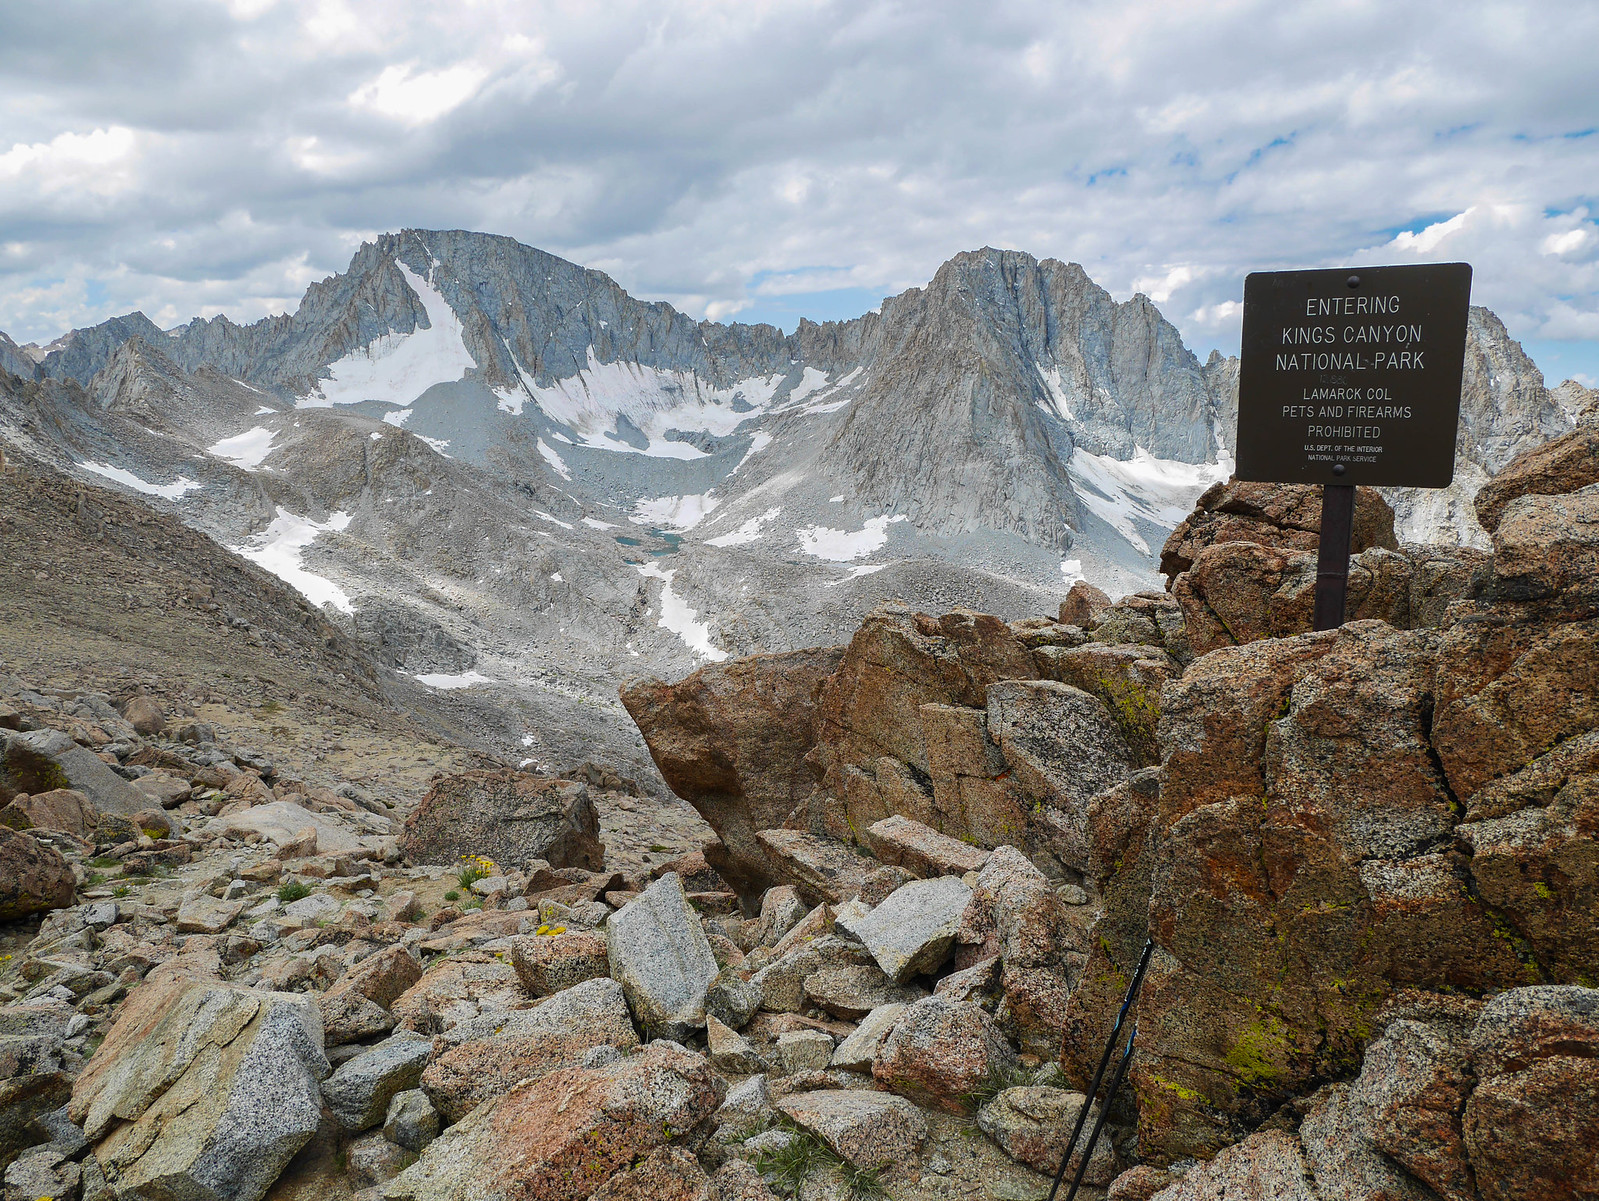 Looking south from Lamarck Col